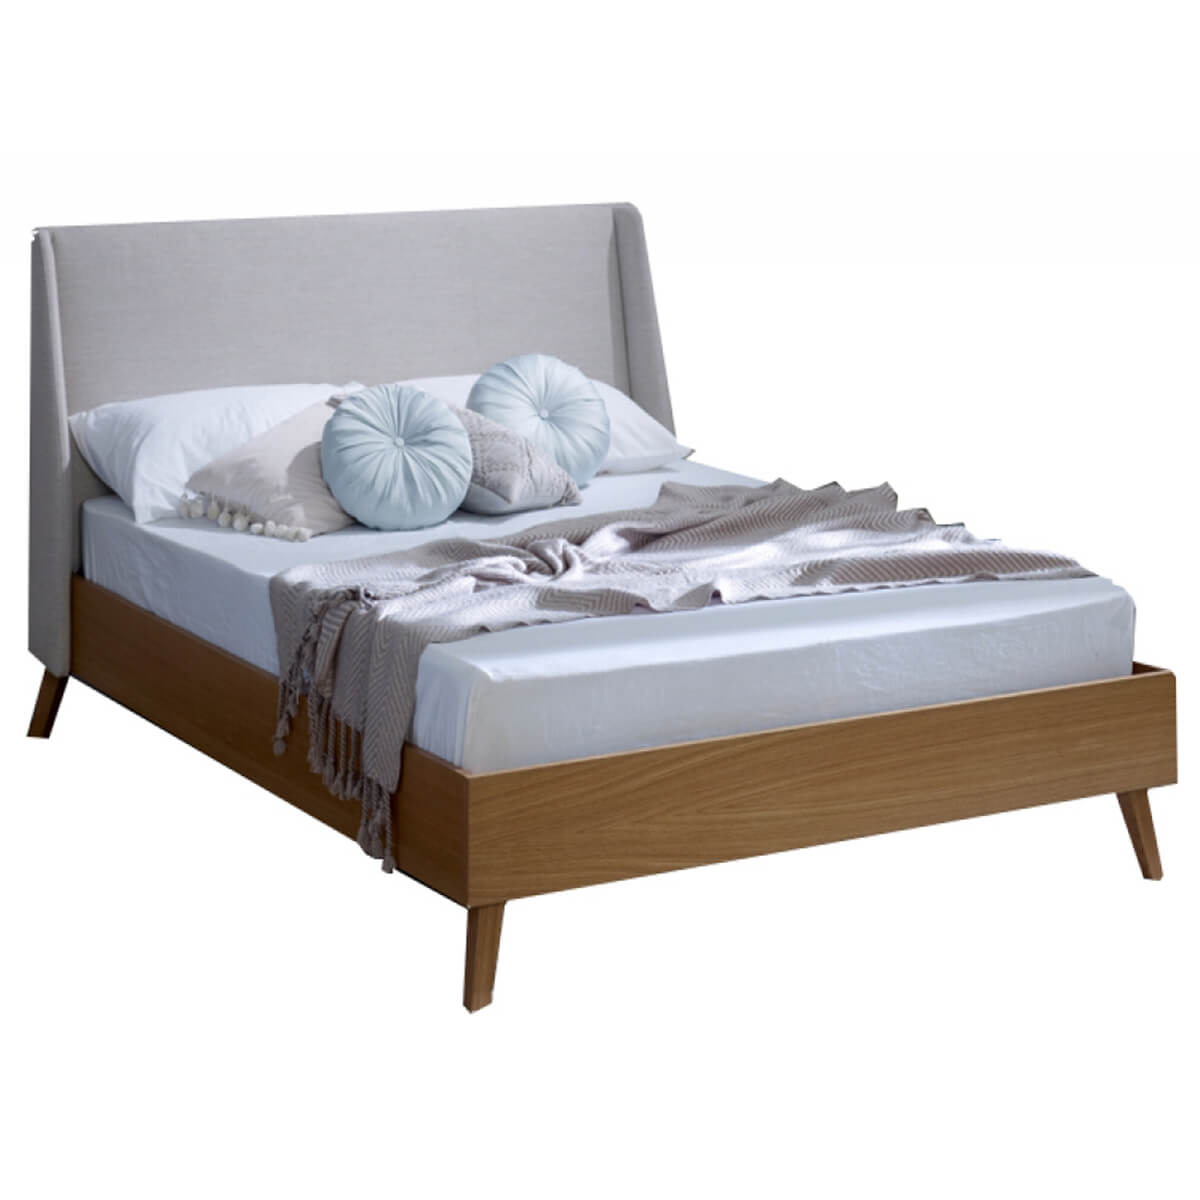 Bianca Scandinavian Bed Frame Natural Fabric & Solid Oak